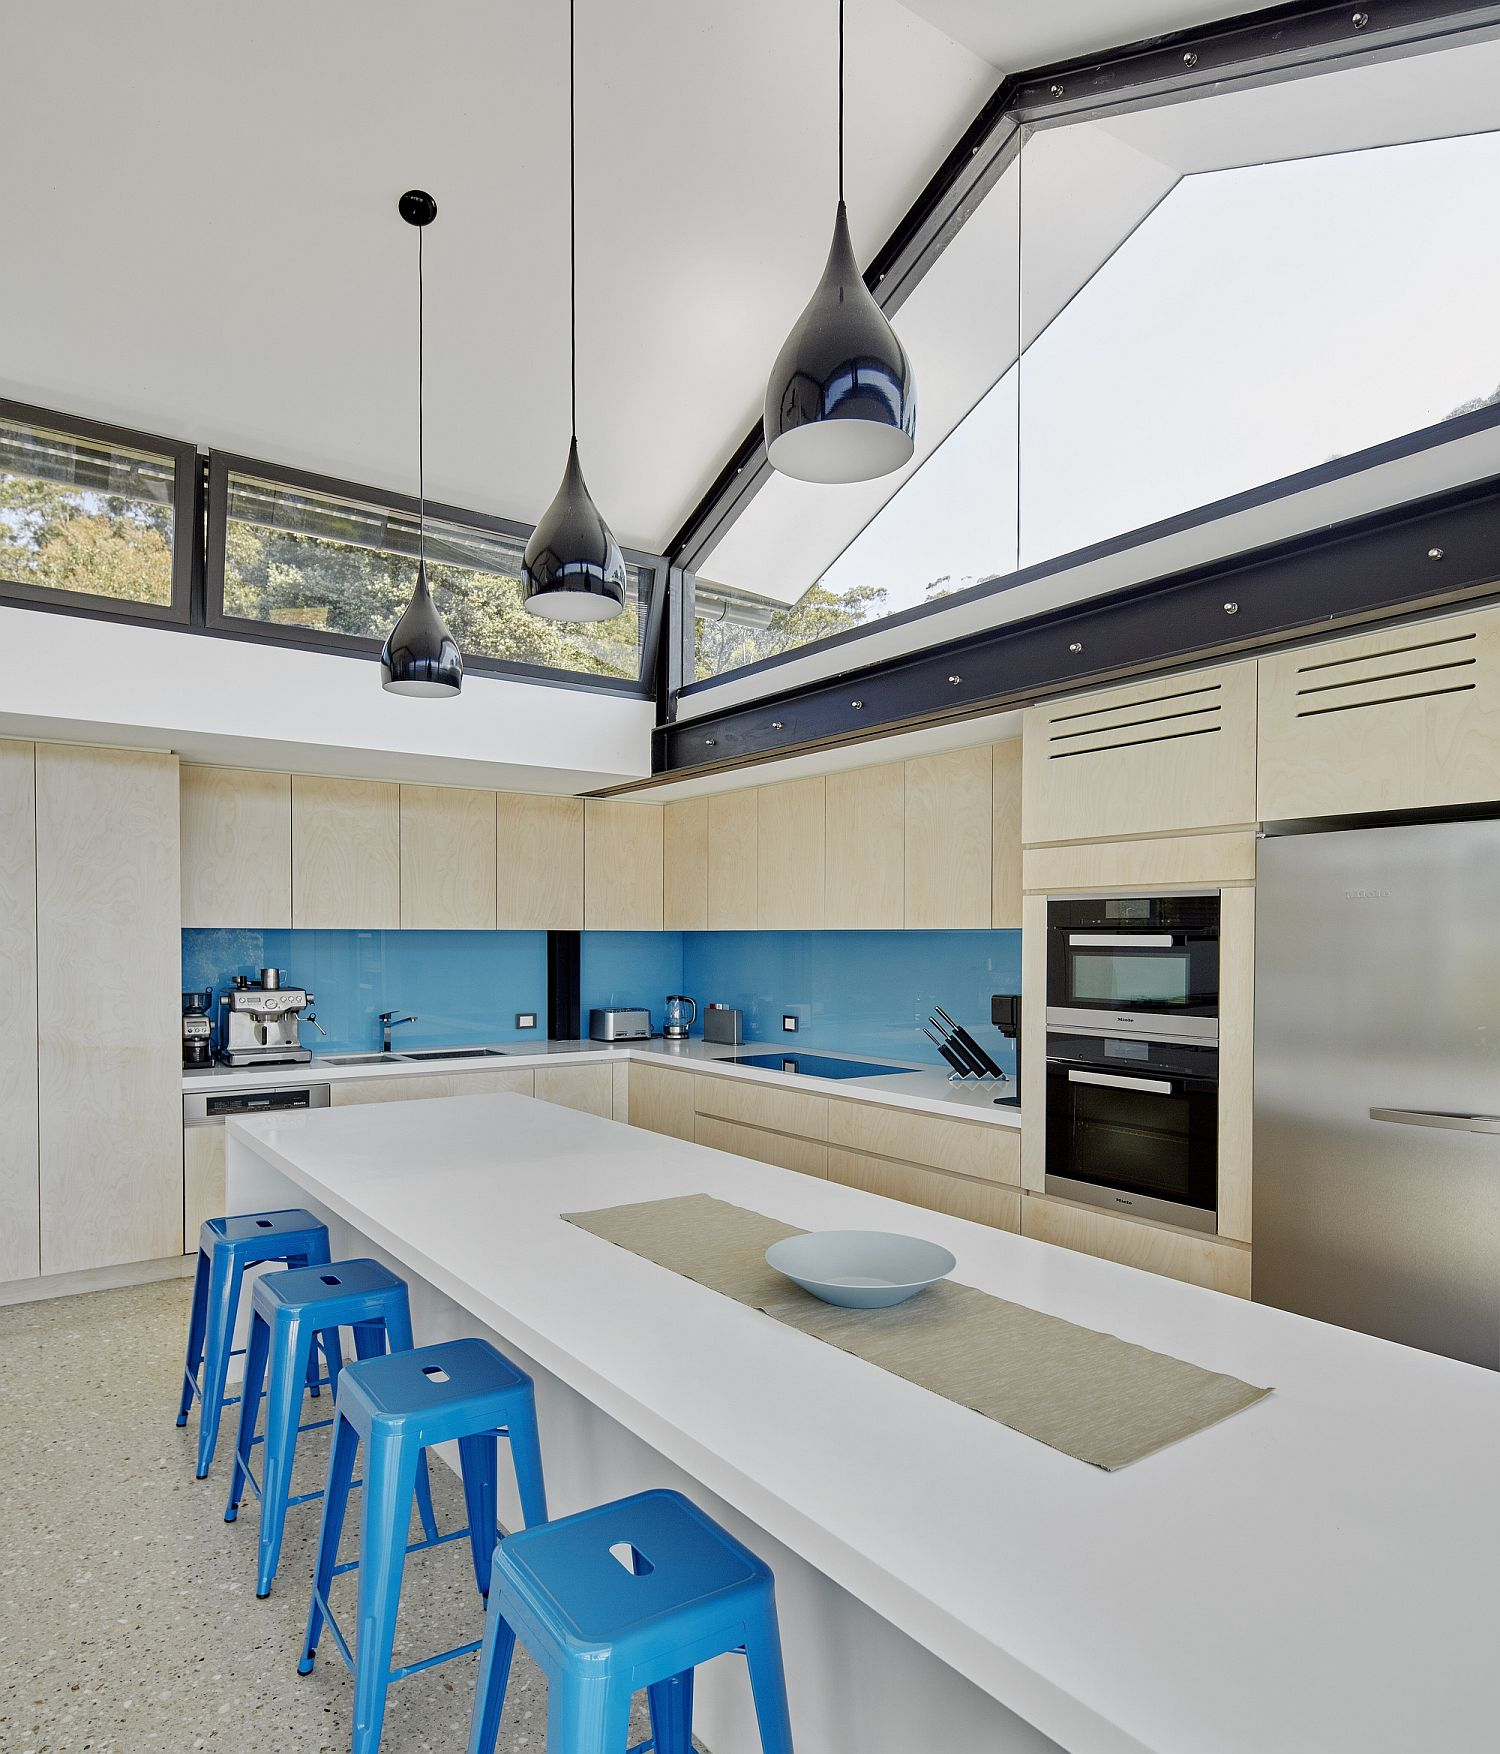 Bar stools and backsplash in blue for the spacious modern kitchen